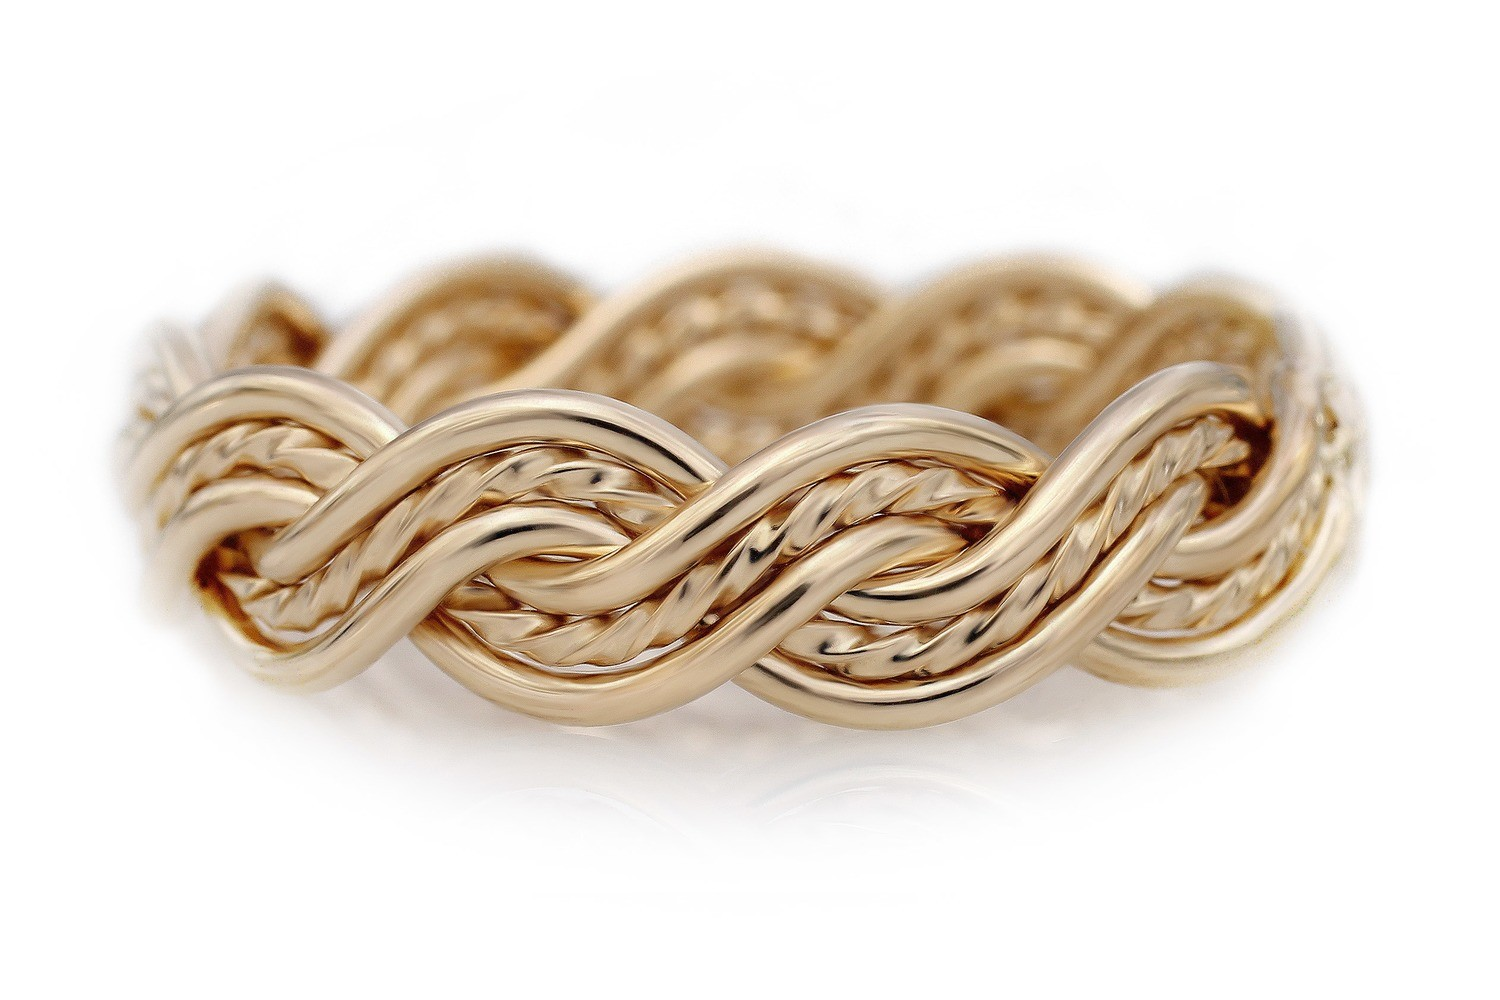 Six Strand Closed Weave (6mm Width Pictured)